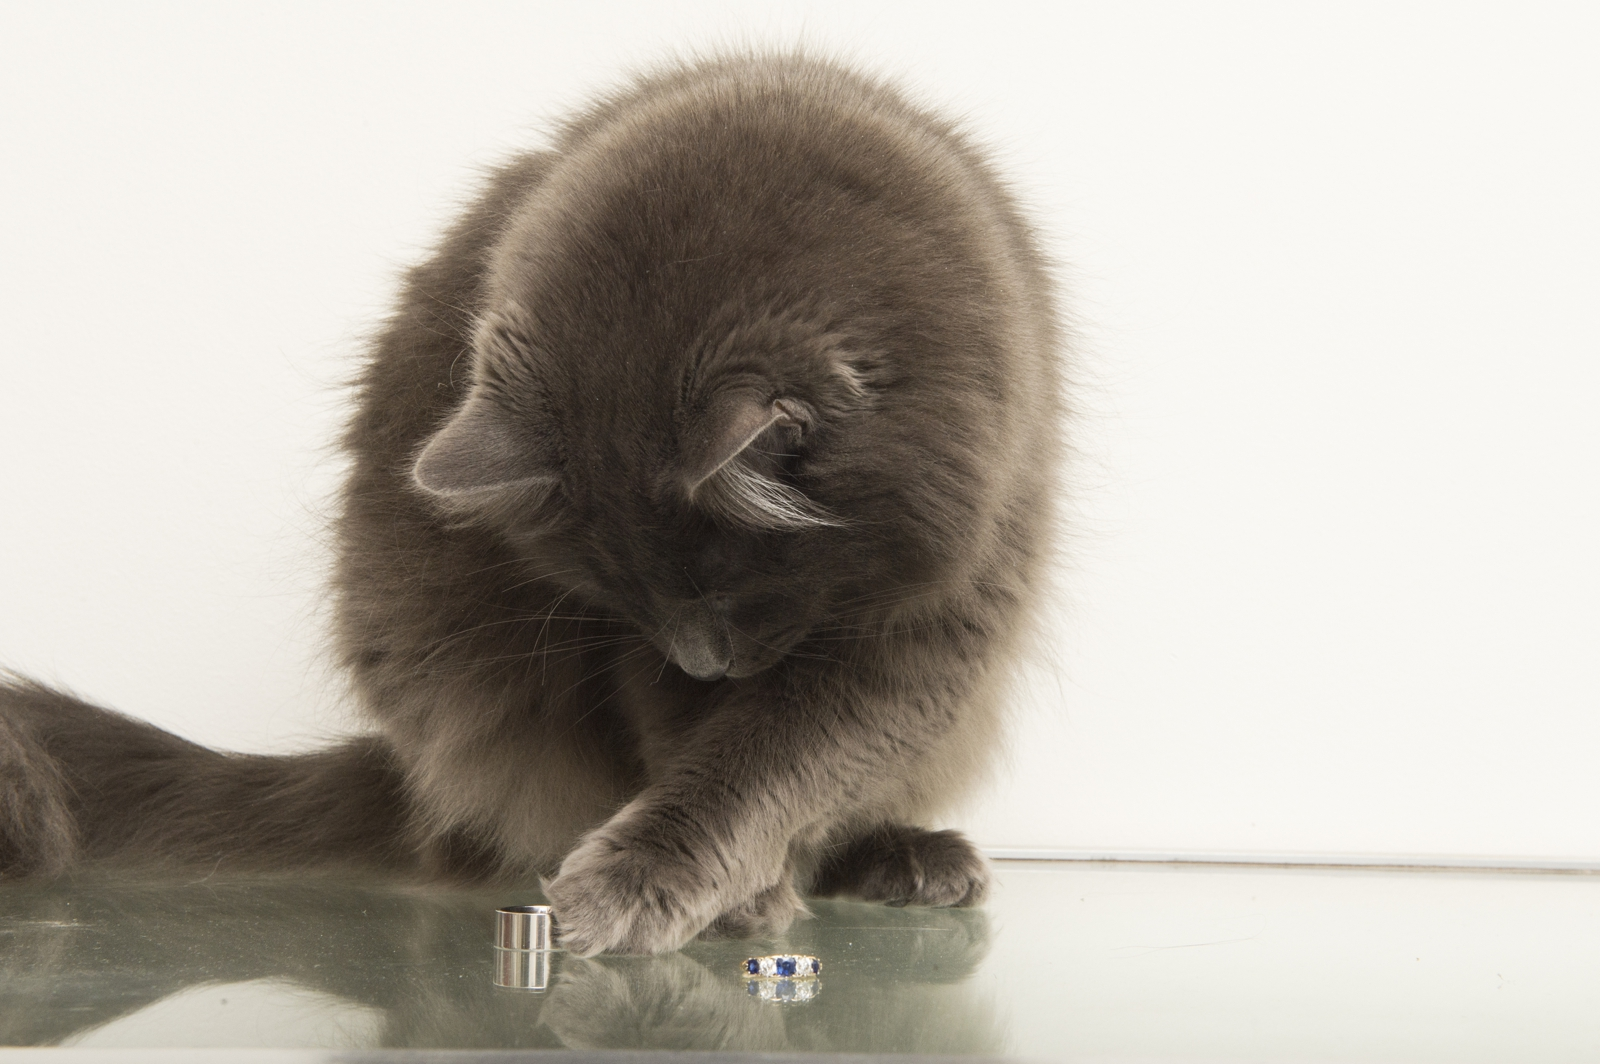 Cat with rings